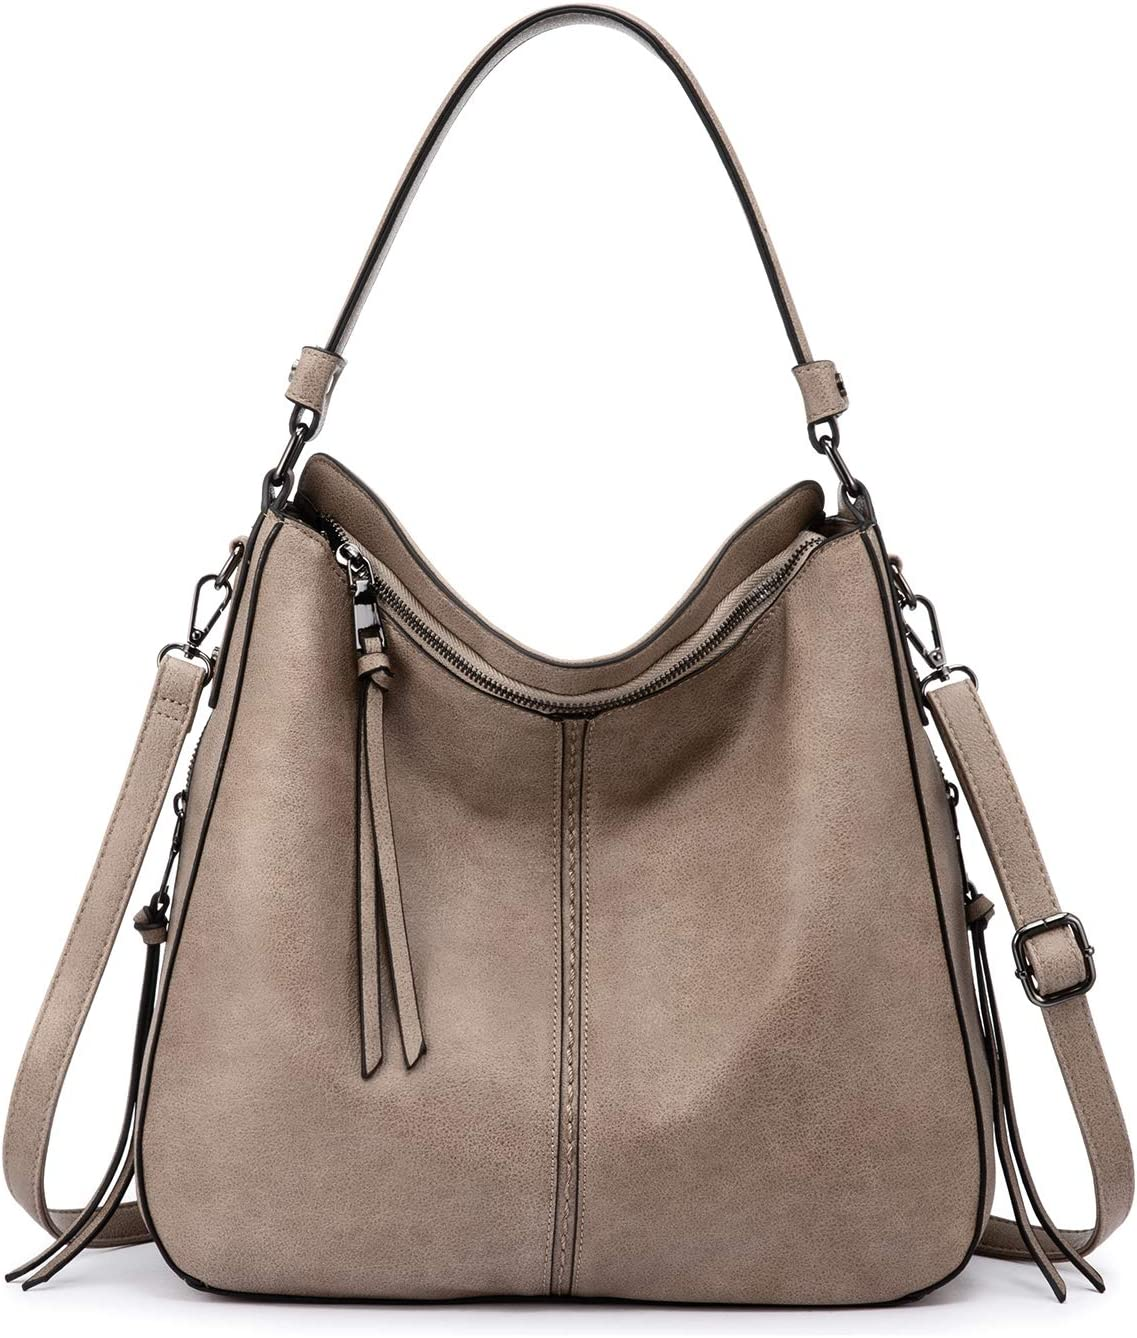 Ladies Fashion Hobo Shoulder Bags With Pouch Faux Leather Large Size Handbags UK